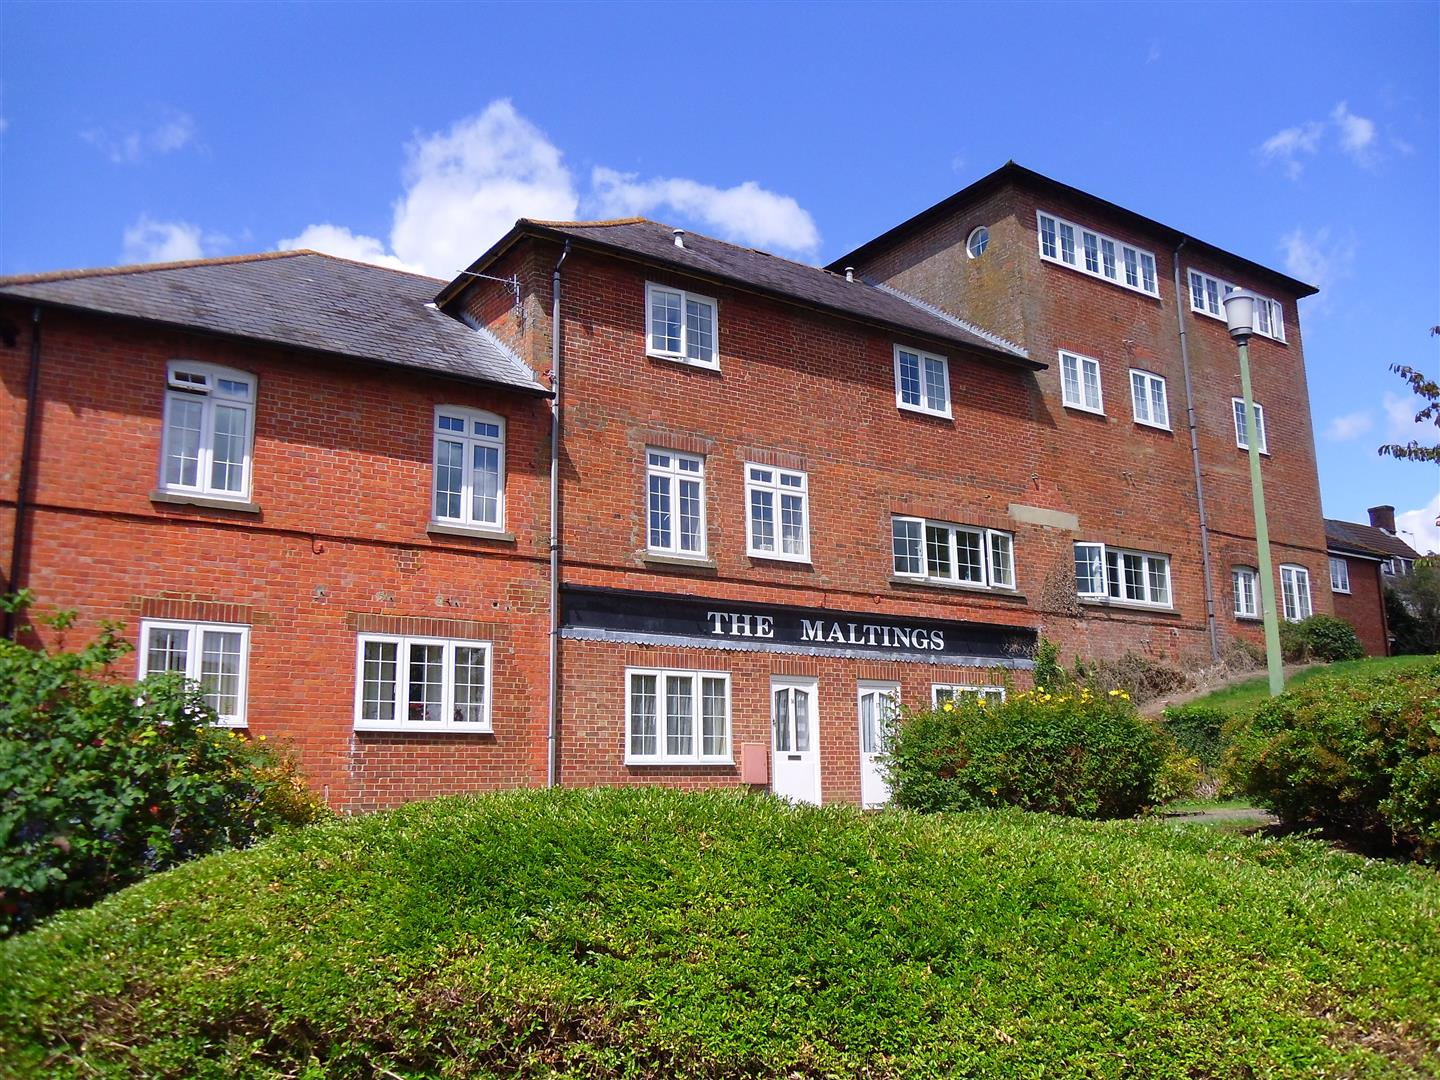 The Maltings, Royal Wootton Bassett